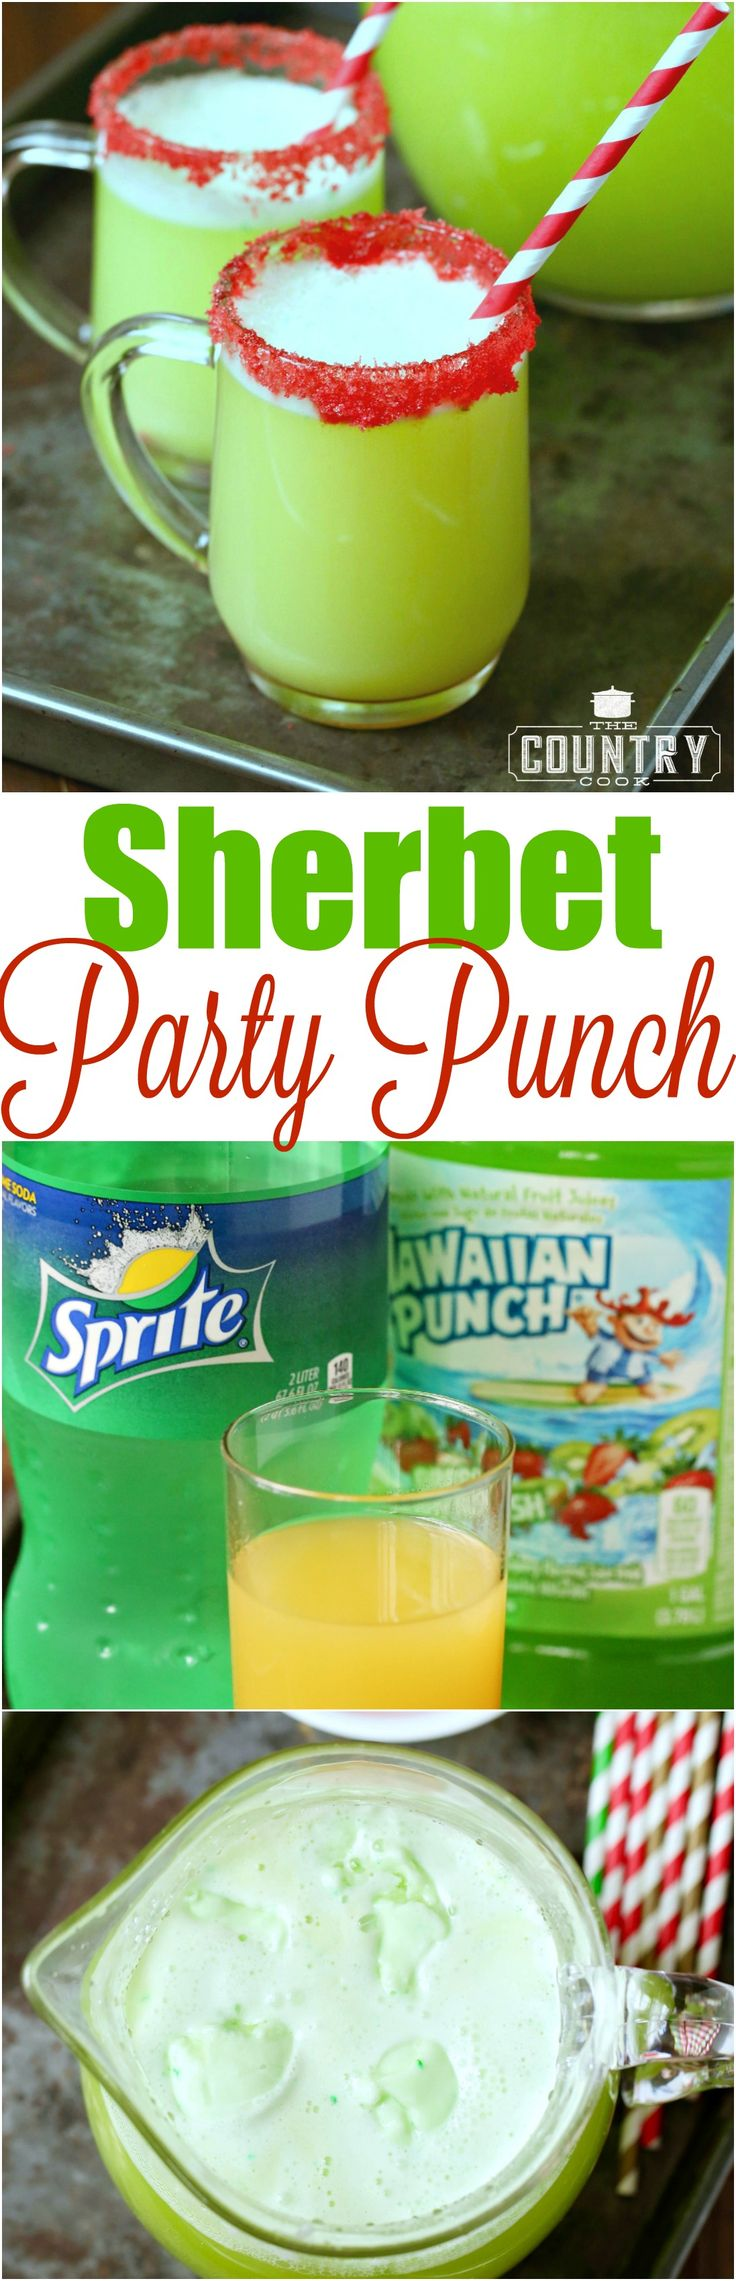 Beverage Recipes: Holiday Party Sherbet Punch - The Country Cook